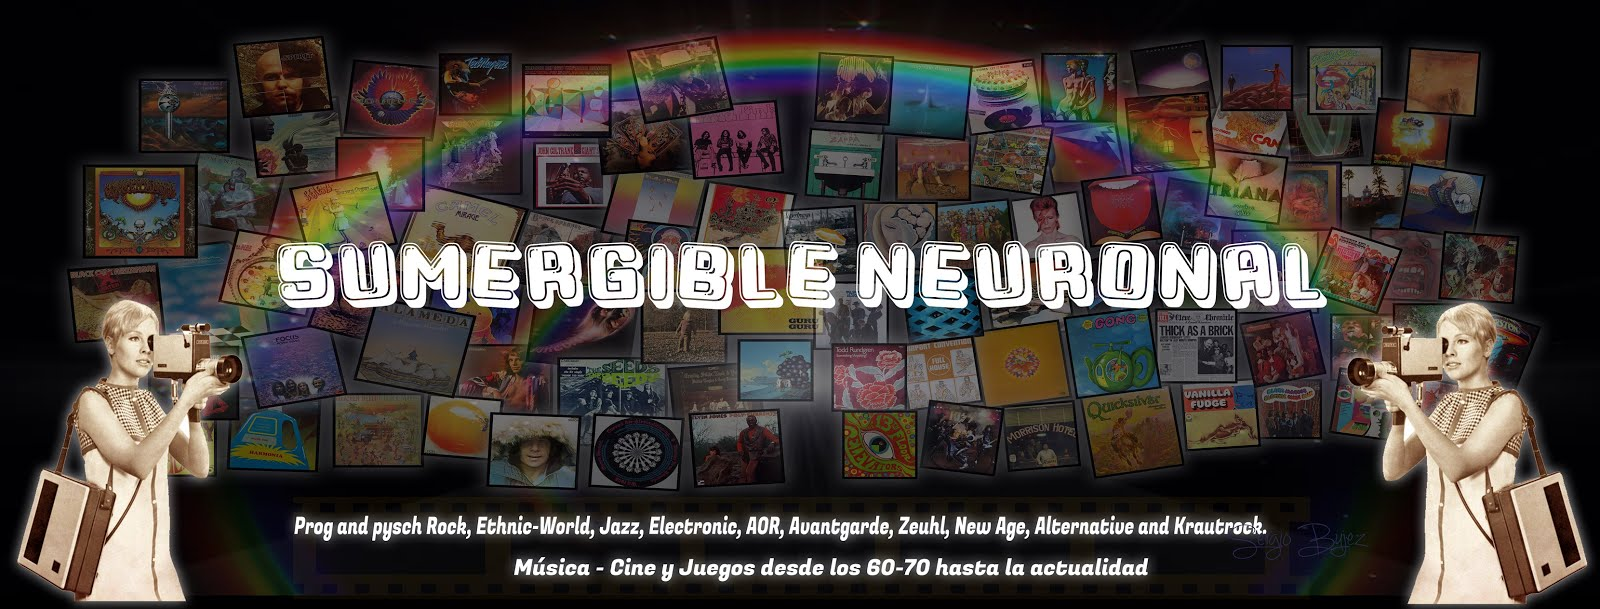 El Sumergible Neuronal